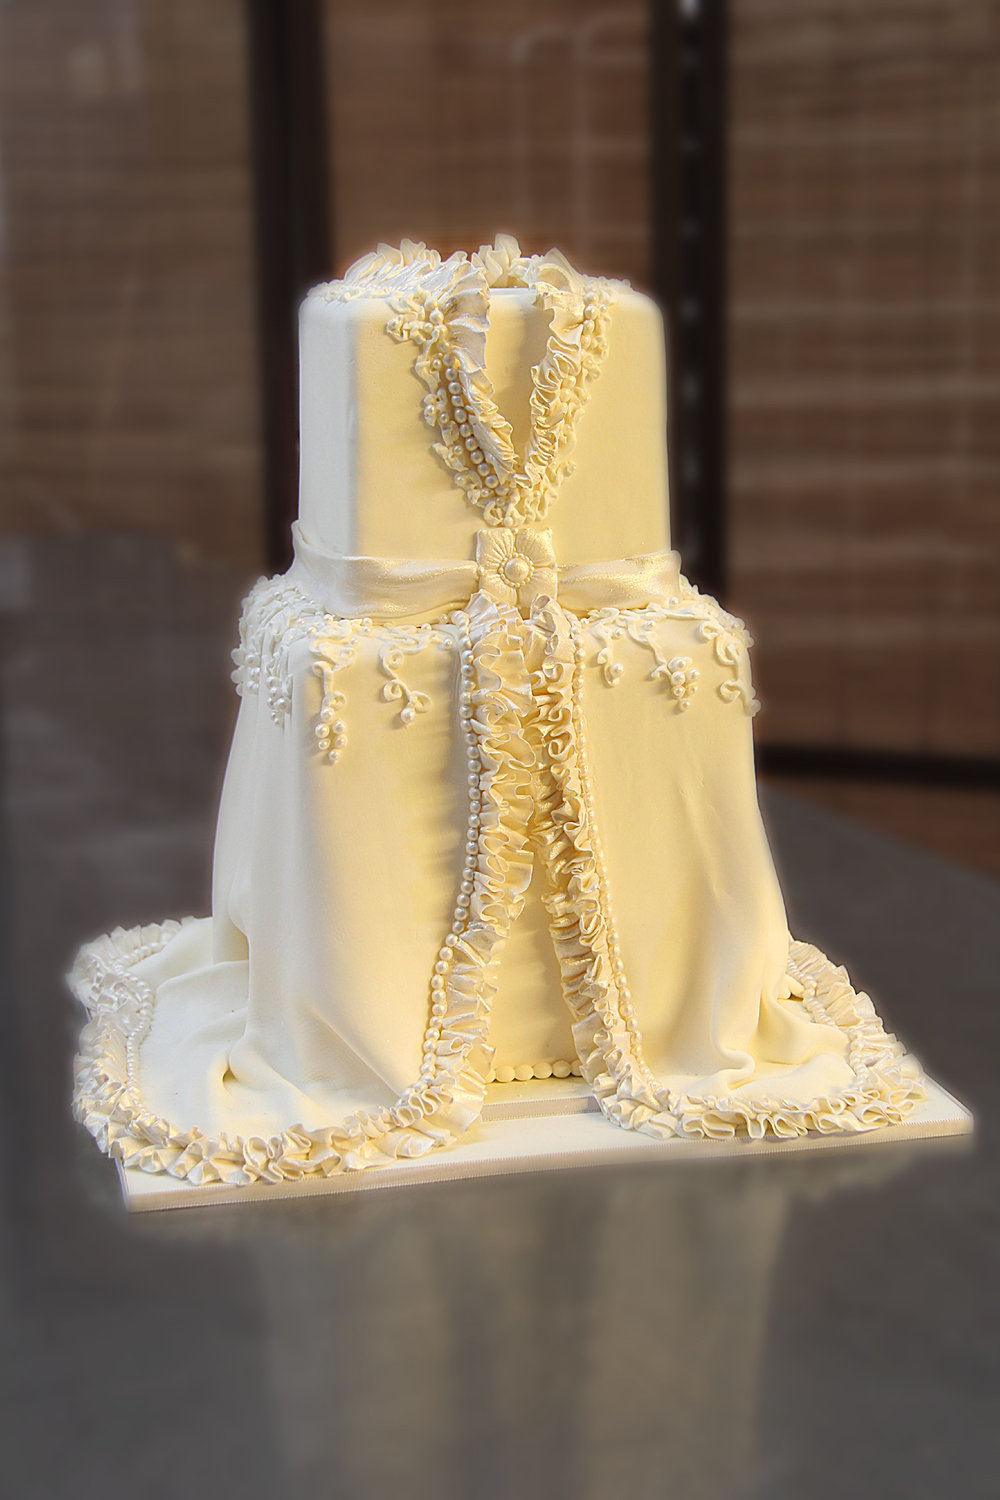 Copy of two tier square wedding dress wedding cake with sugar ruffles and pearls Hilo Hawaii Big Island Kailua-Kona